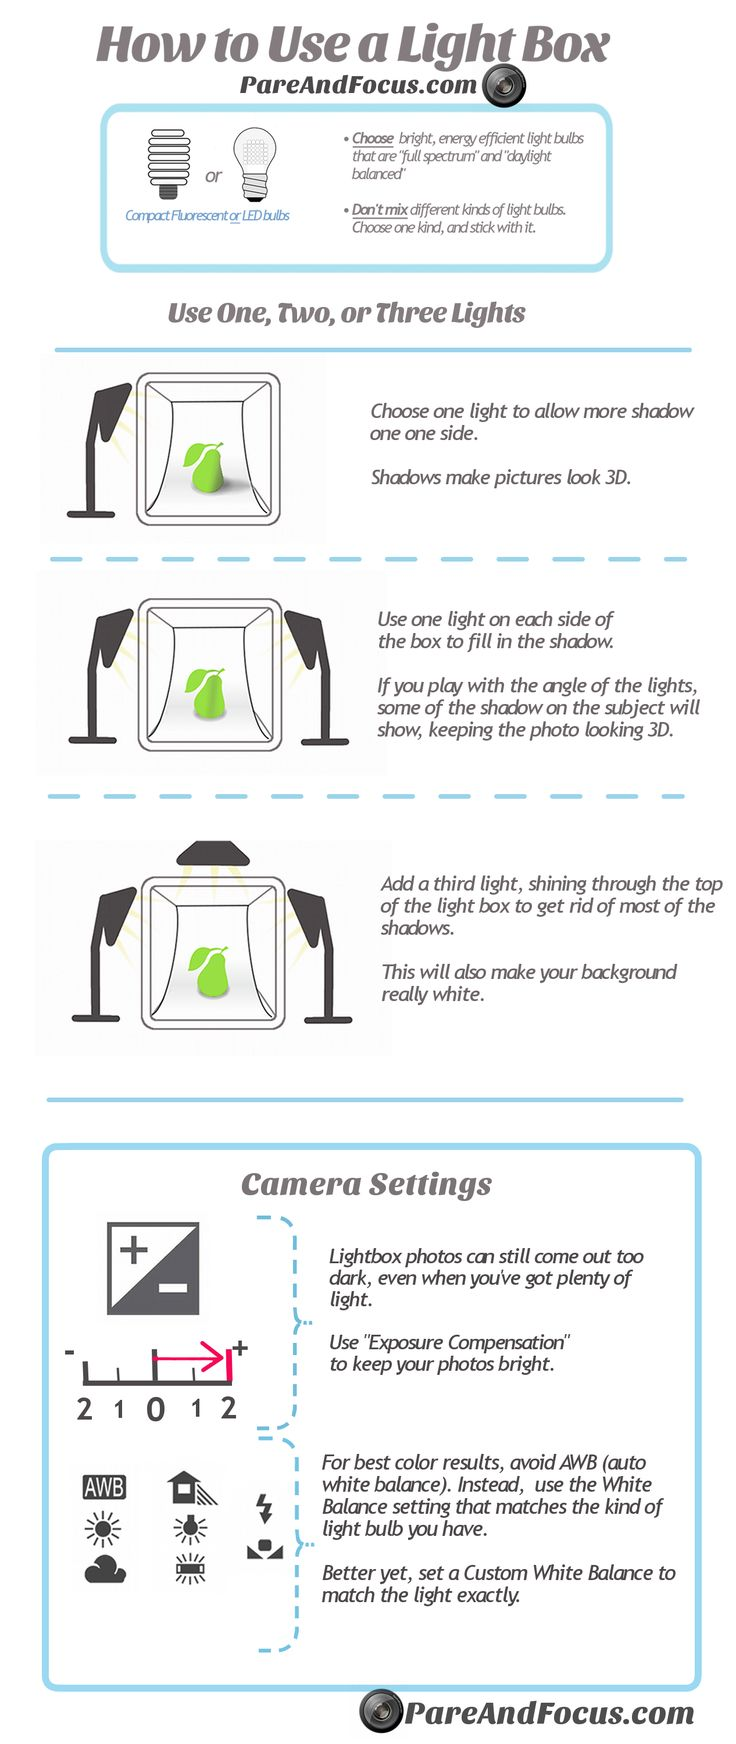 How to use a light box to get the best product photos. From PareAndFocus.com and pcPolyzine.com.